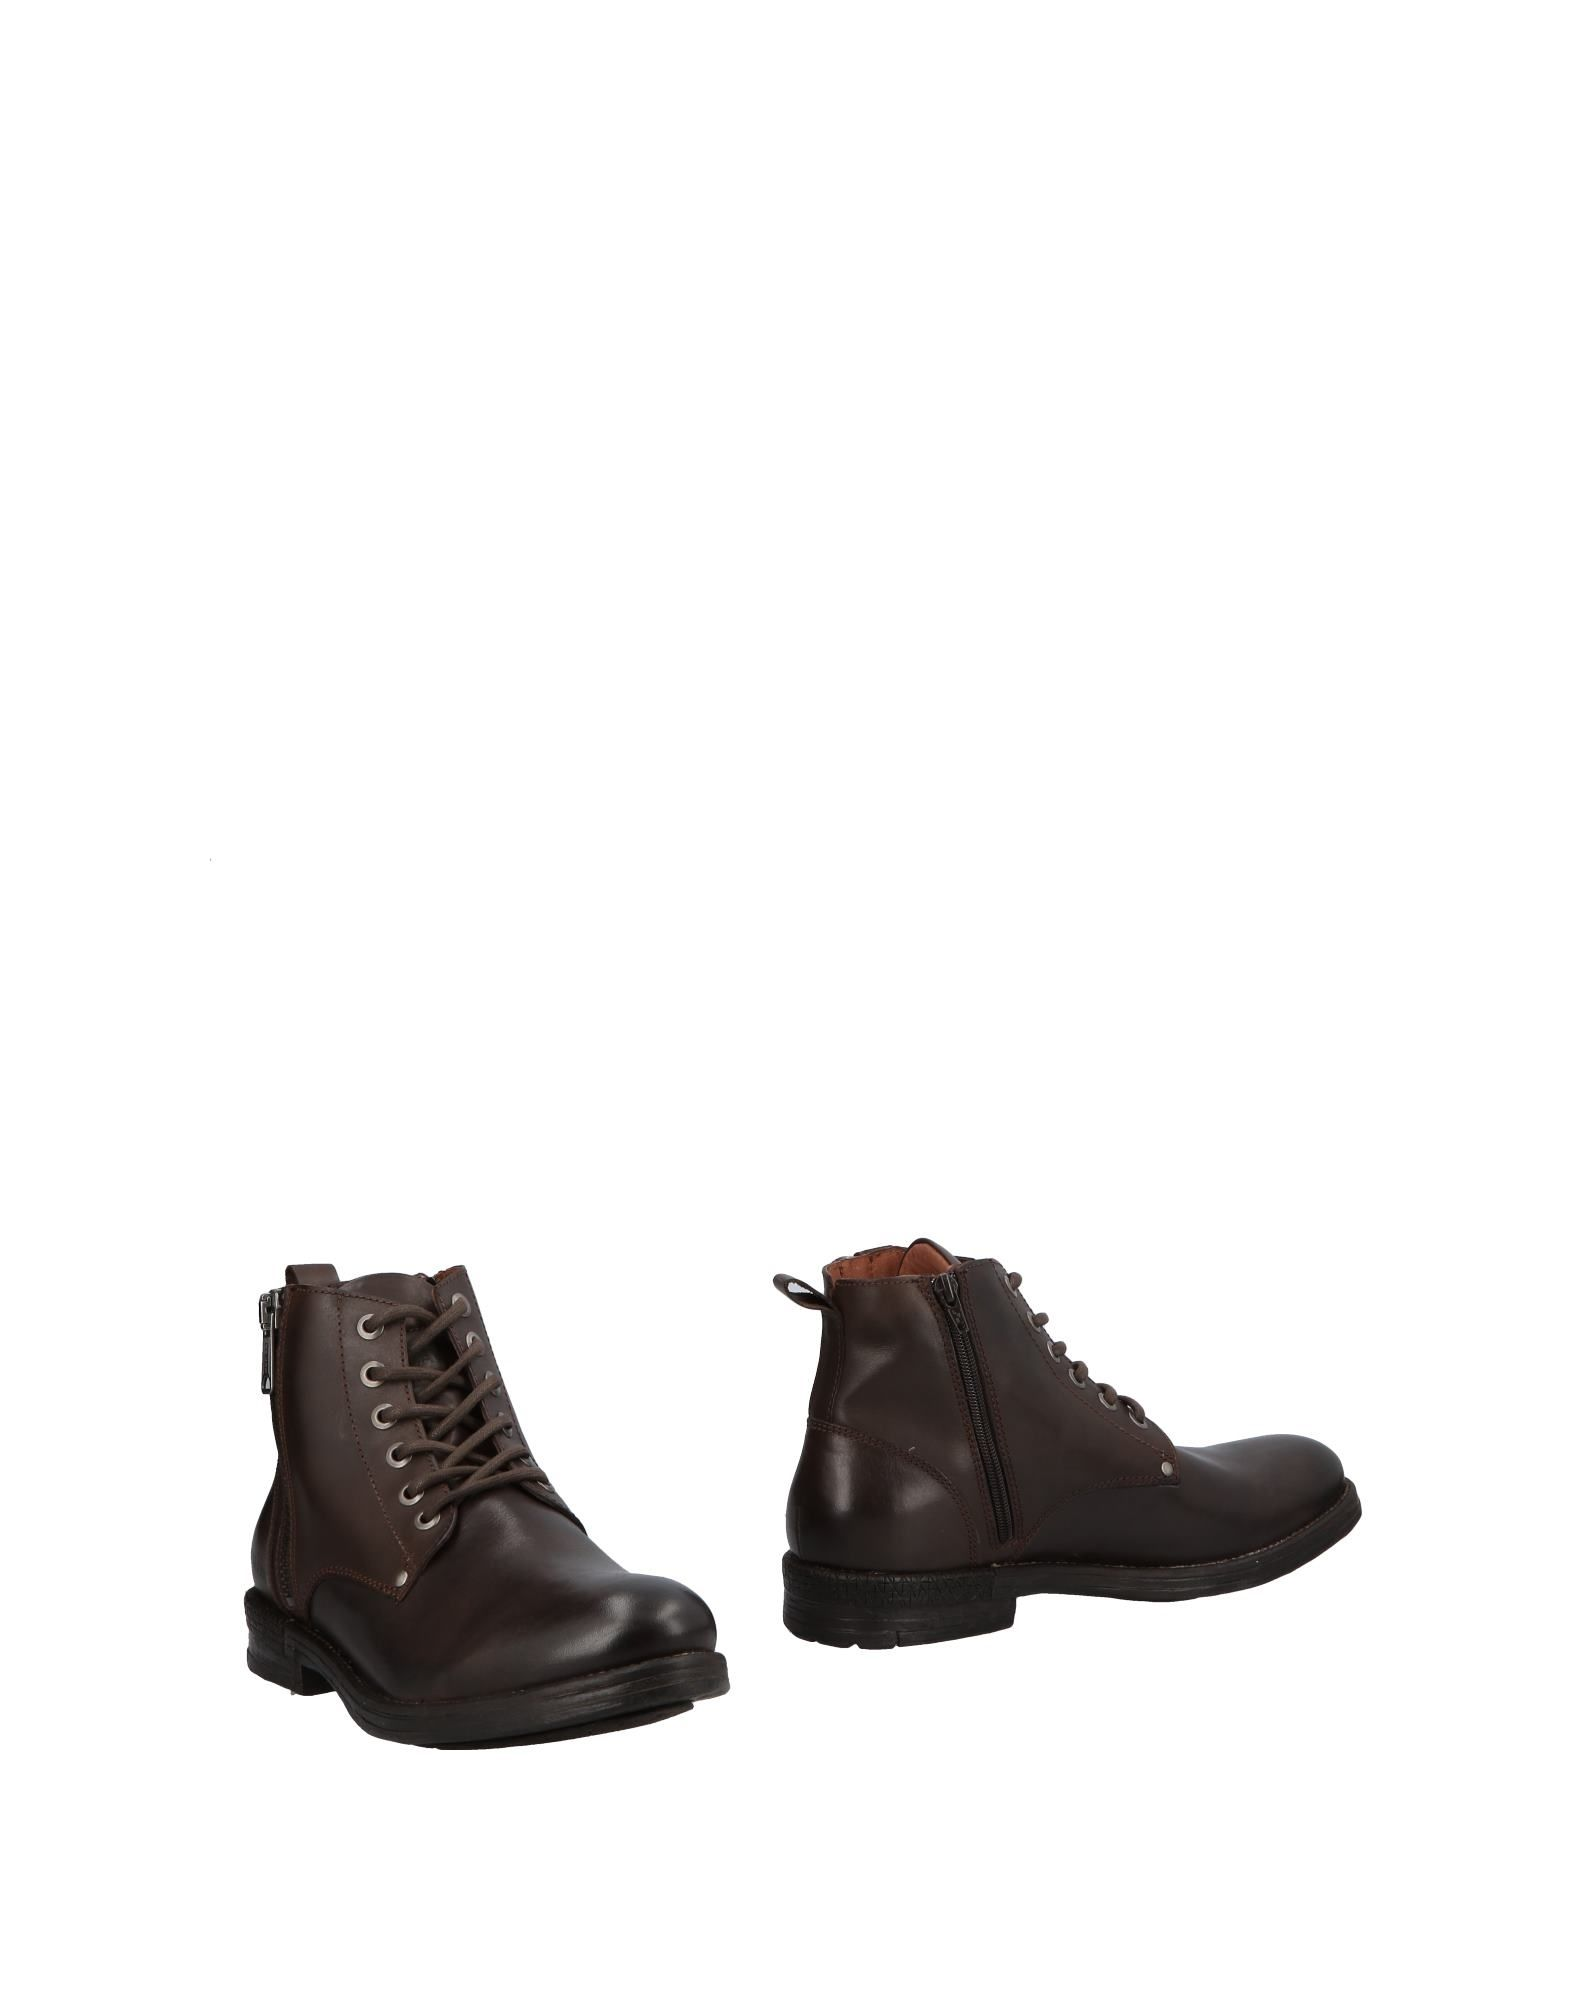 REPLAY Boots in Dark Brown